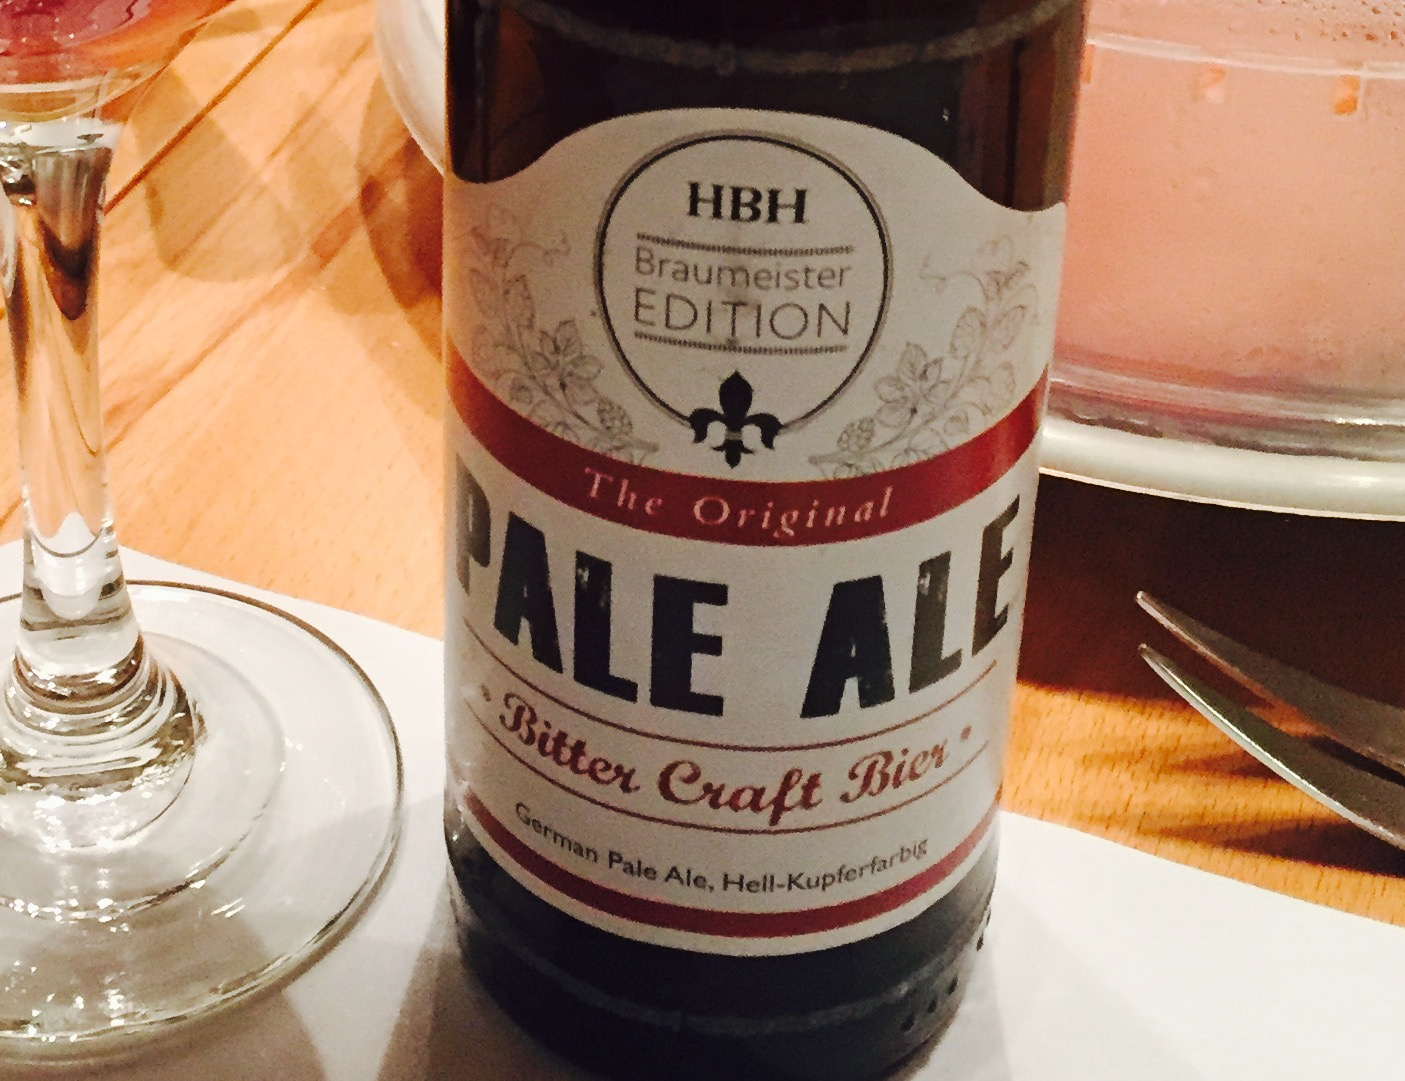 HBH - German Pale Ale